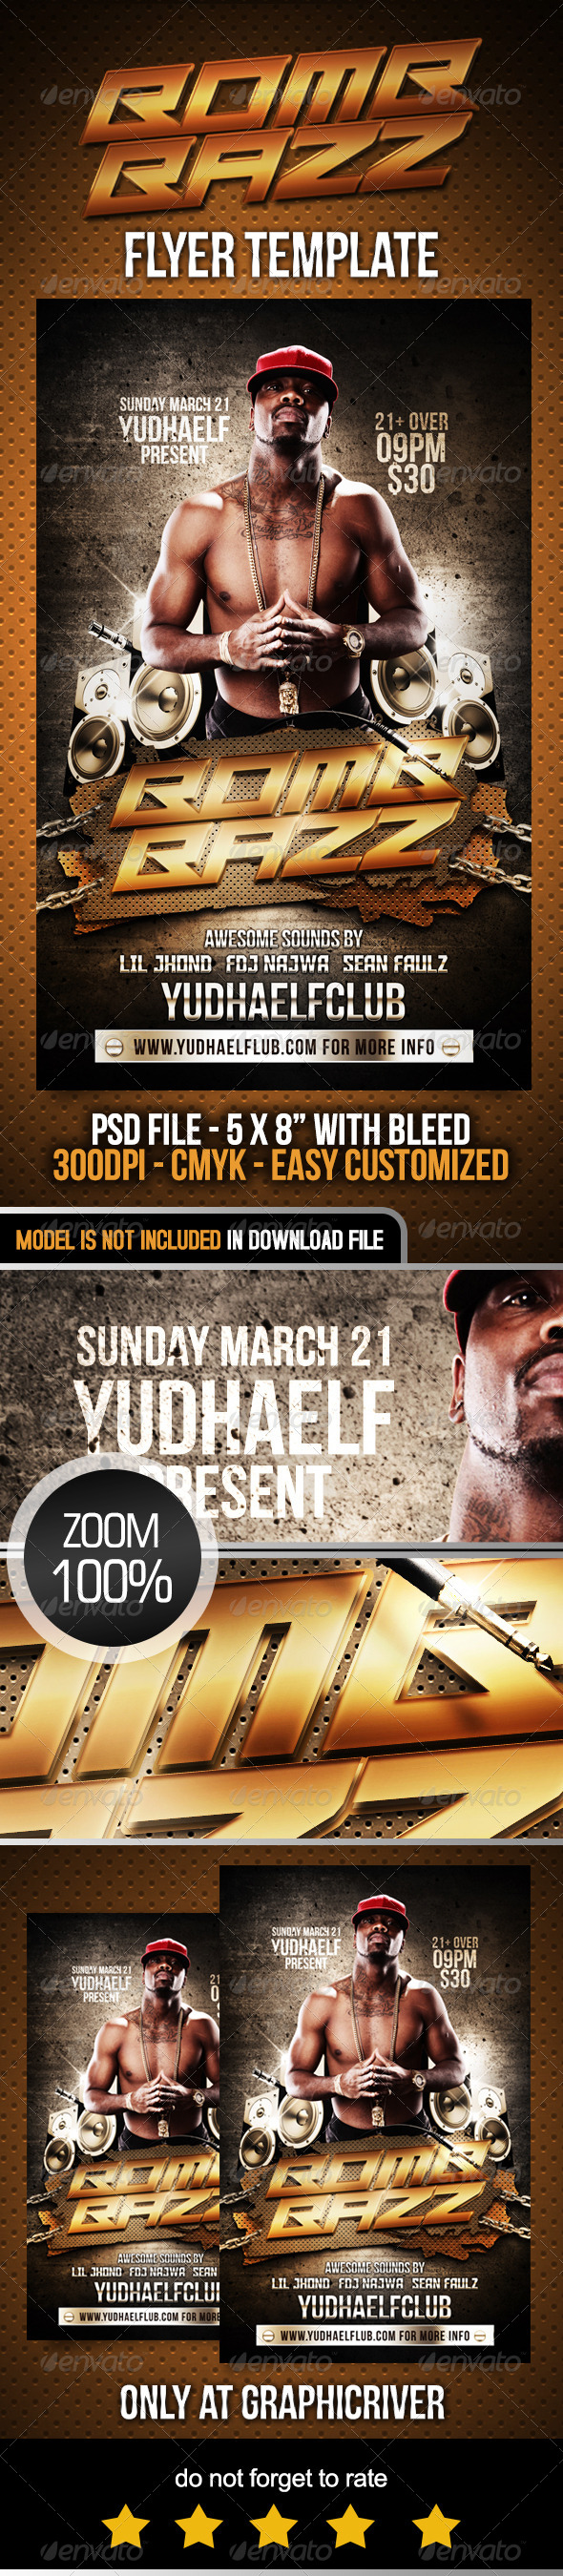 Bomb Bazz Flyer Template - Clubs & Parties Events